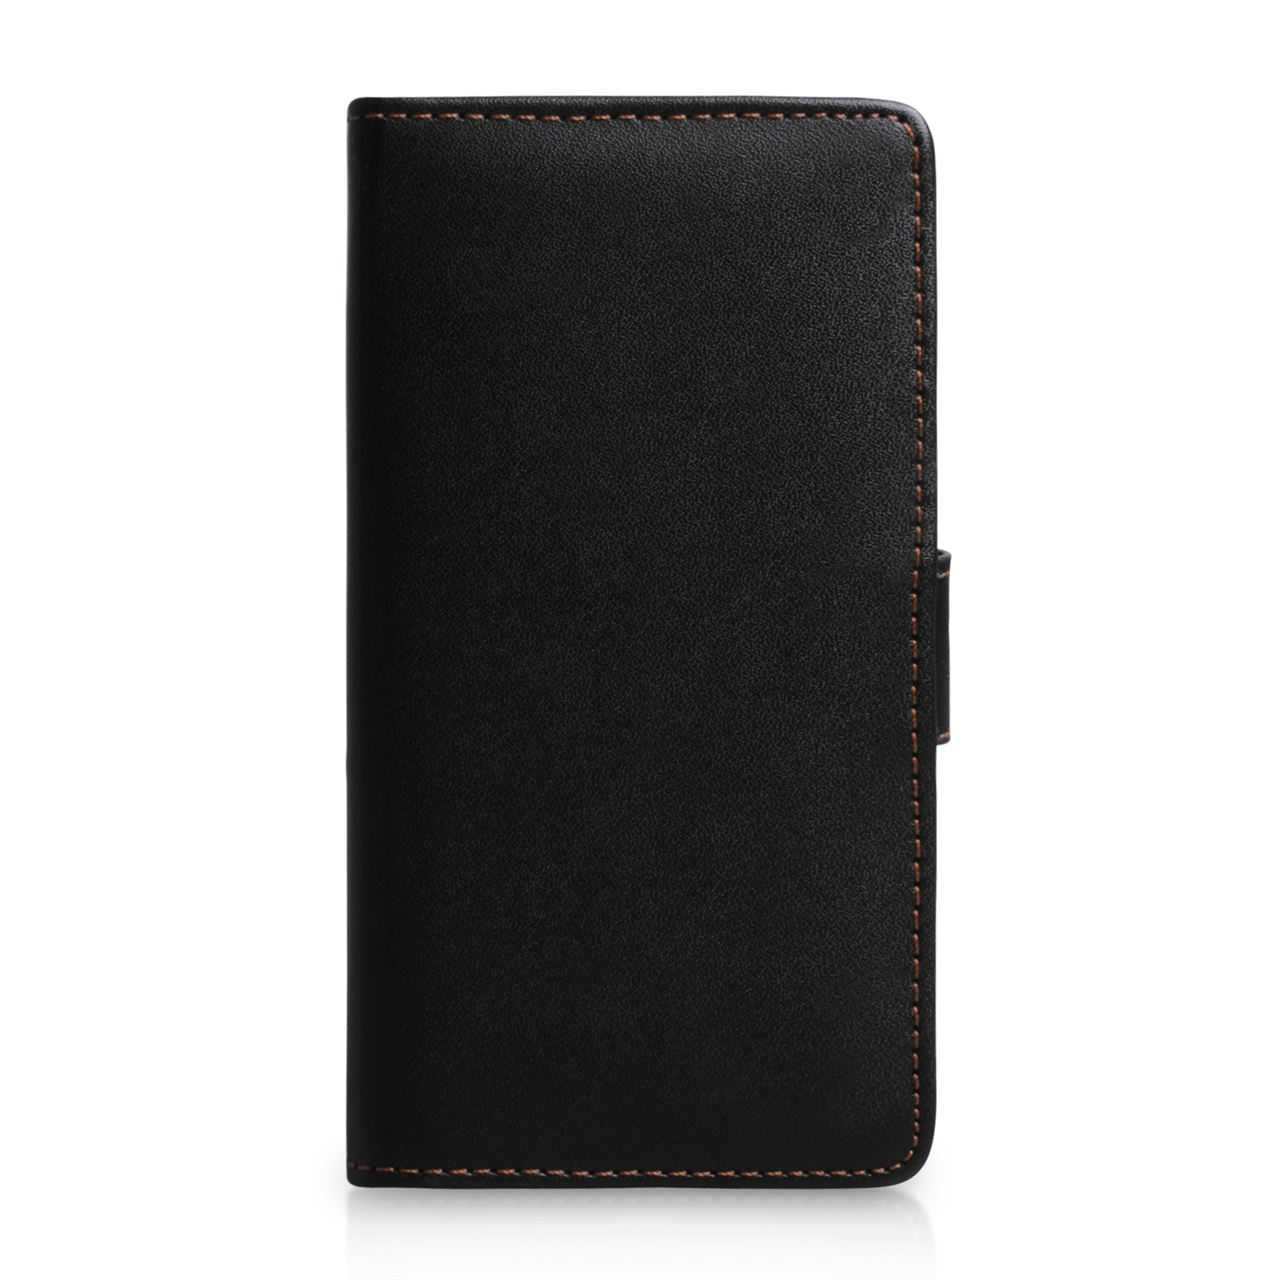 YouSave Accessories Sony Xperia SP Leather Effect Wallet Case - Black